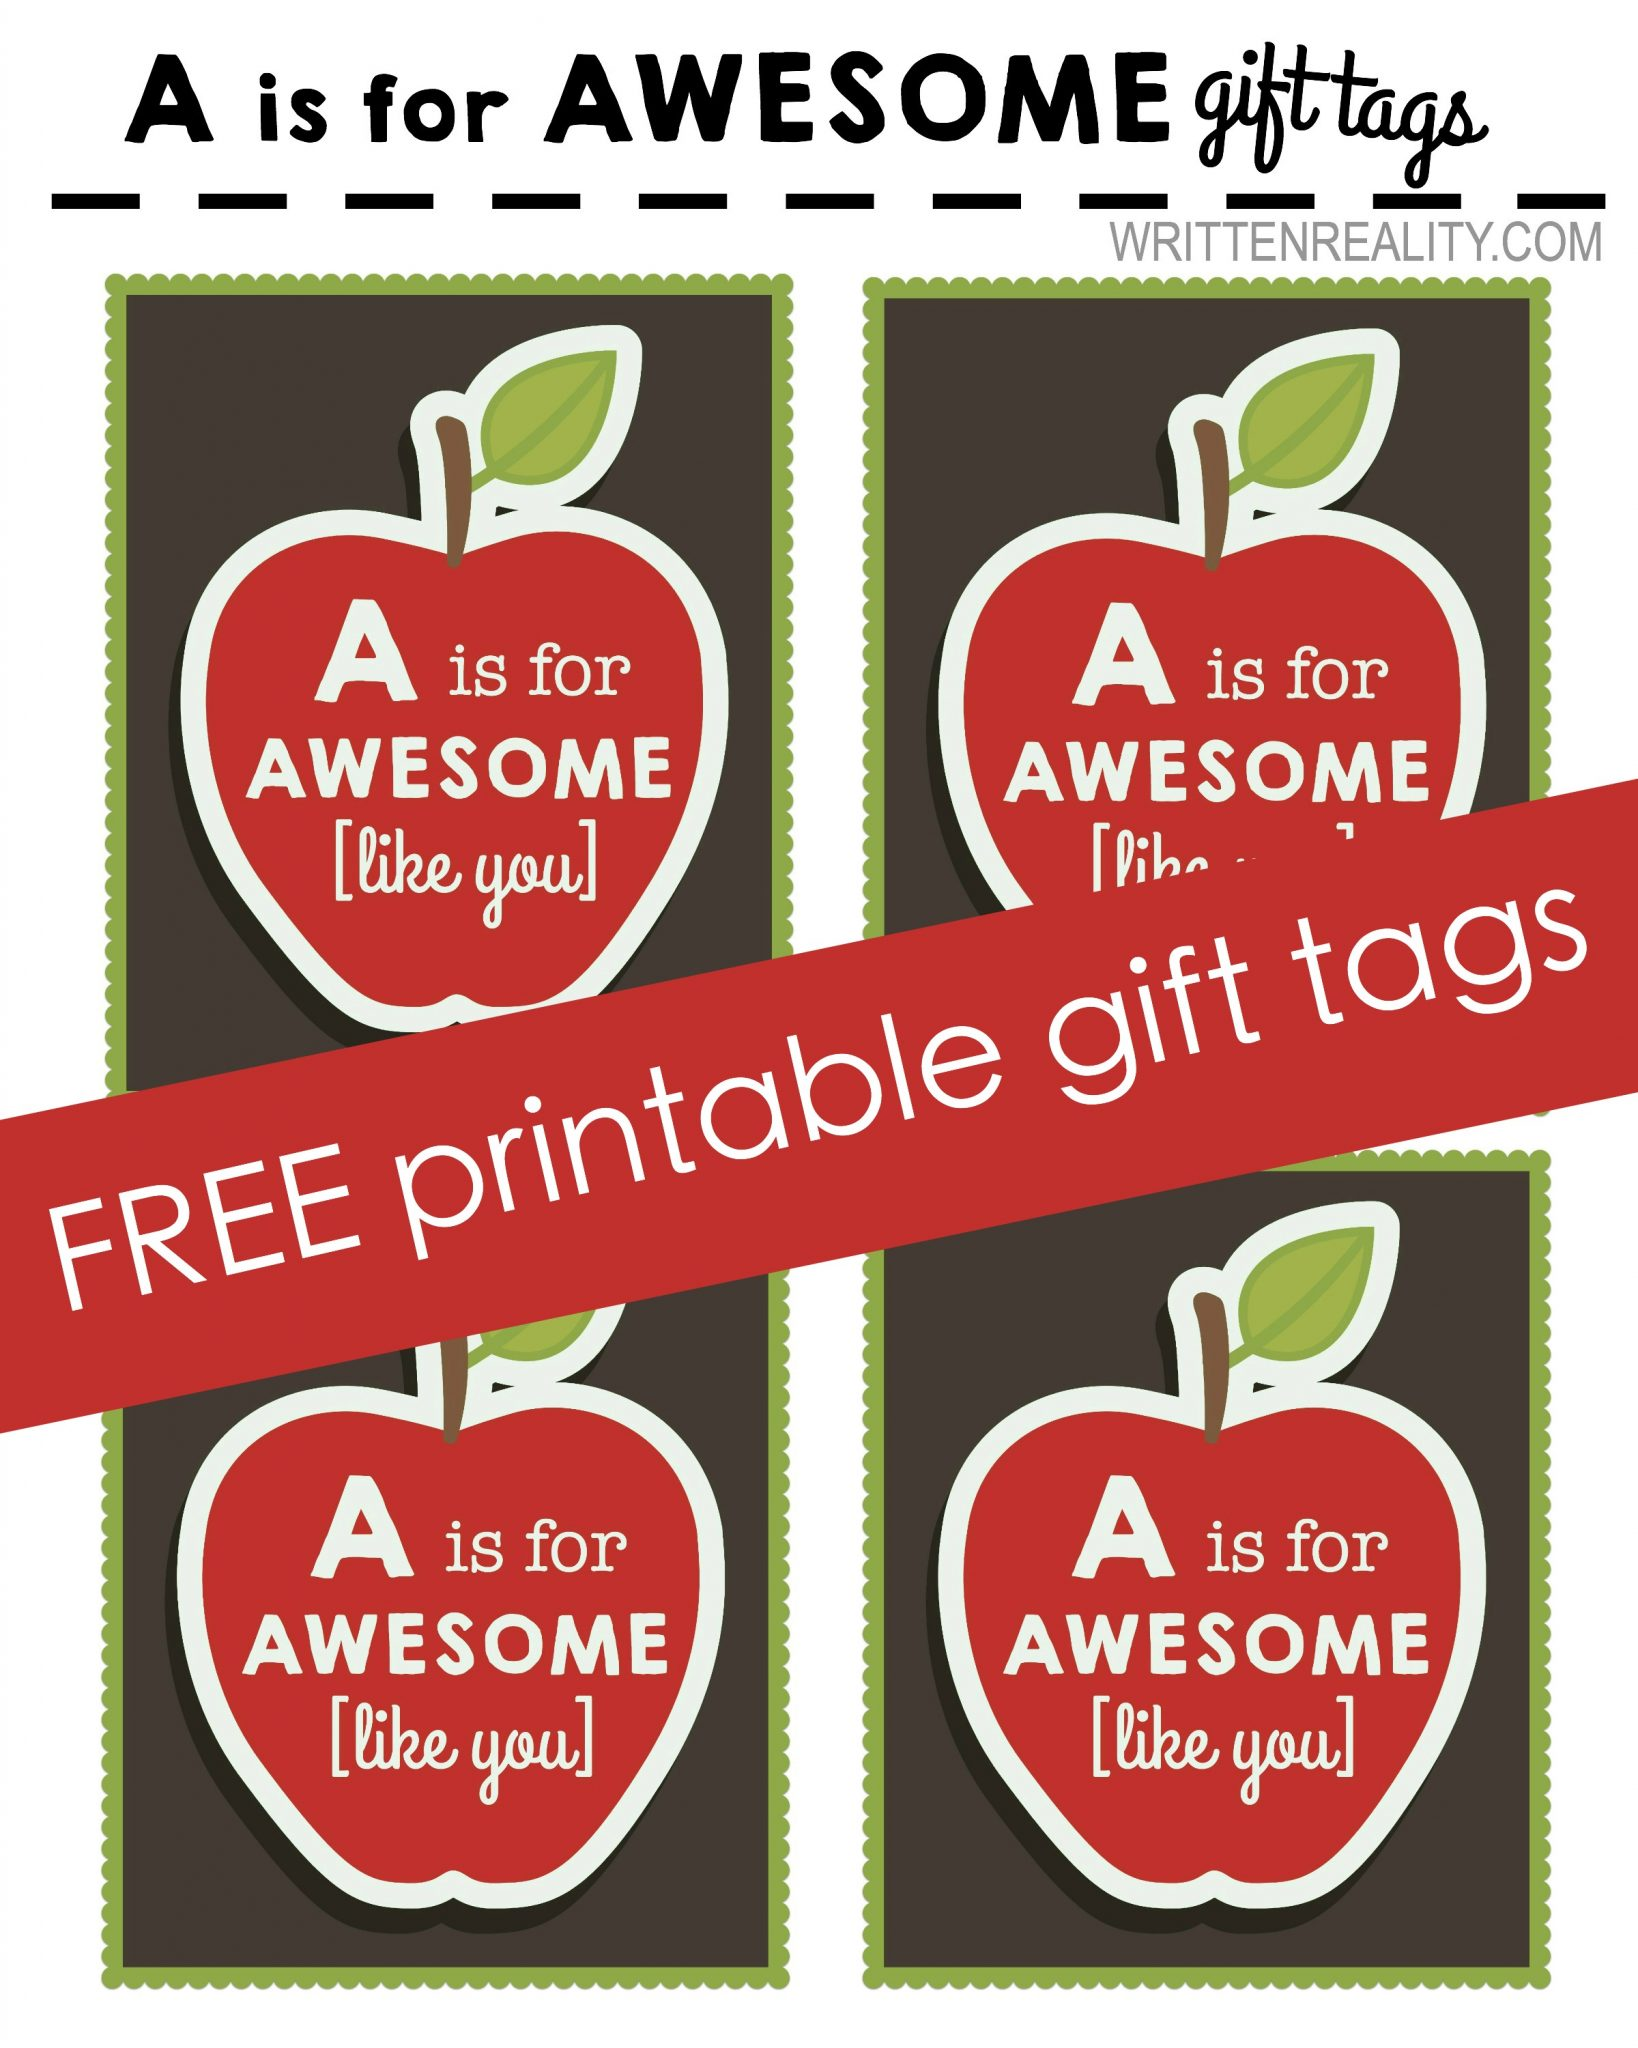 photograph regarding Tag Printable named Absolutely free Printable Apple Tag - Composed Real truth